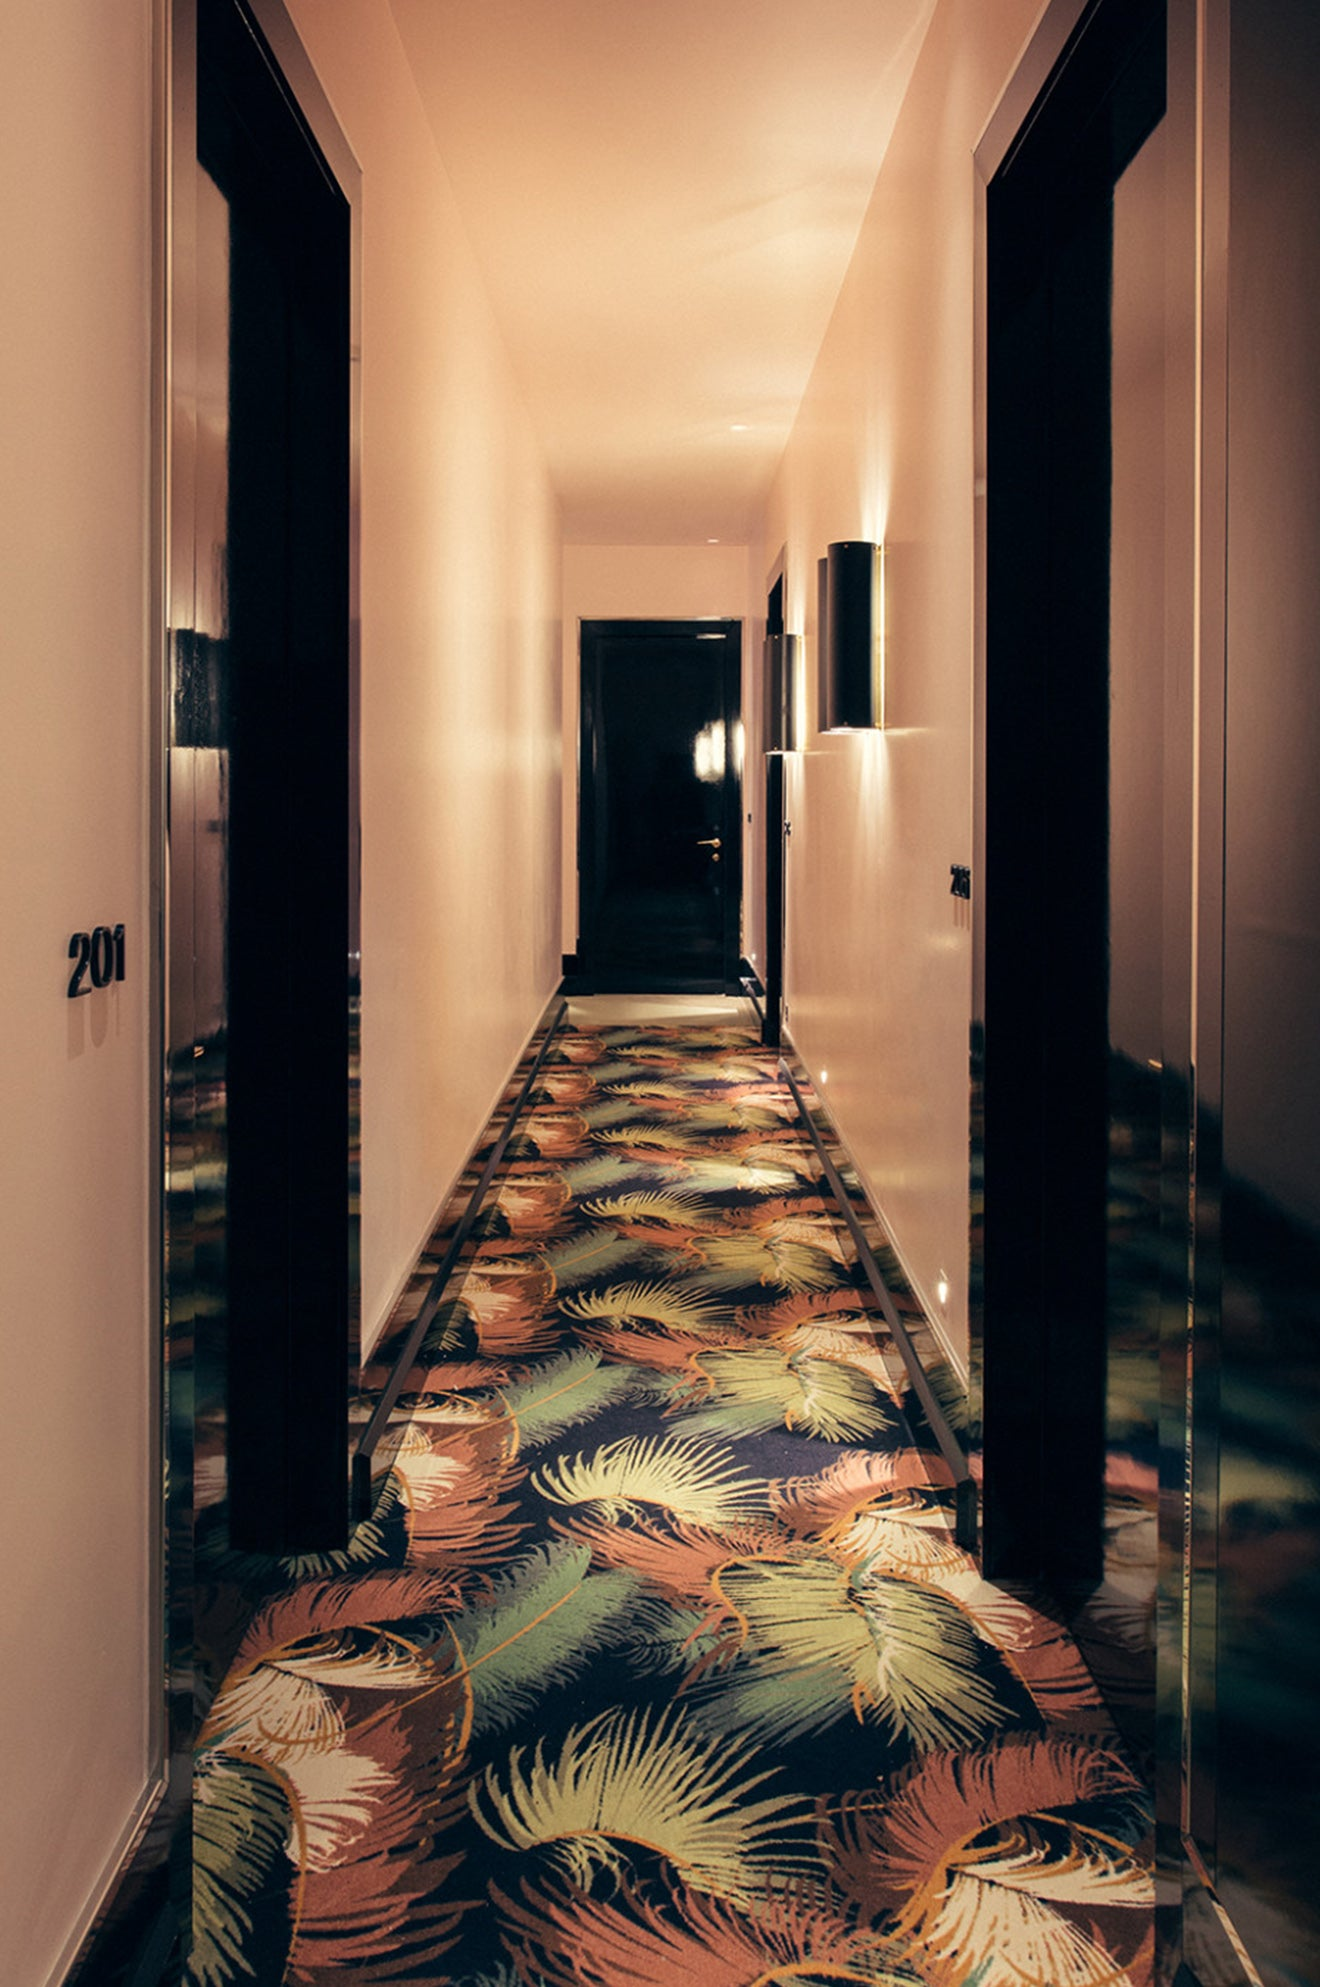 Luxury Retro boutique hotel with striking carpet design